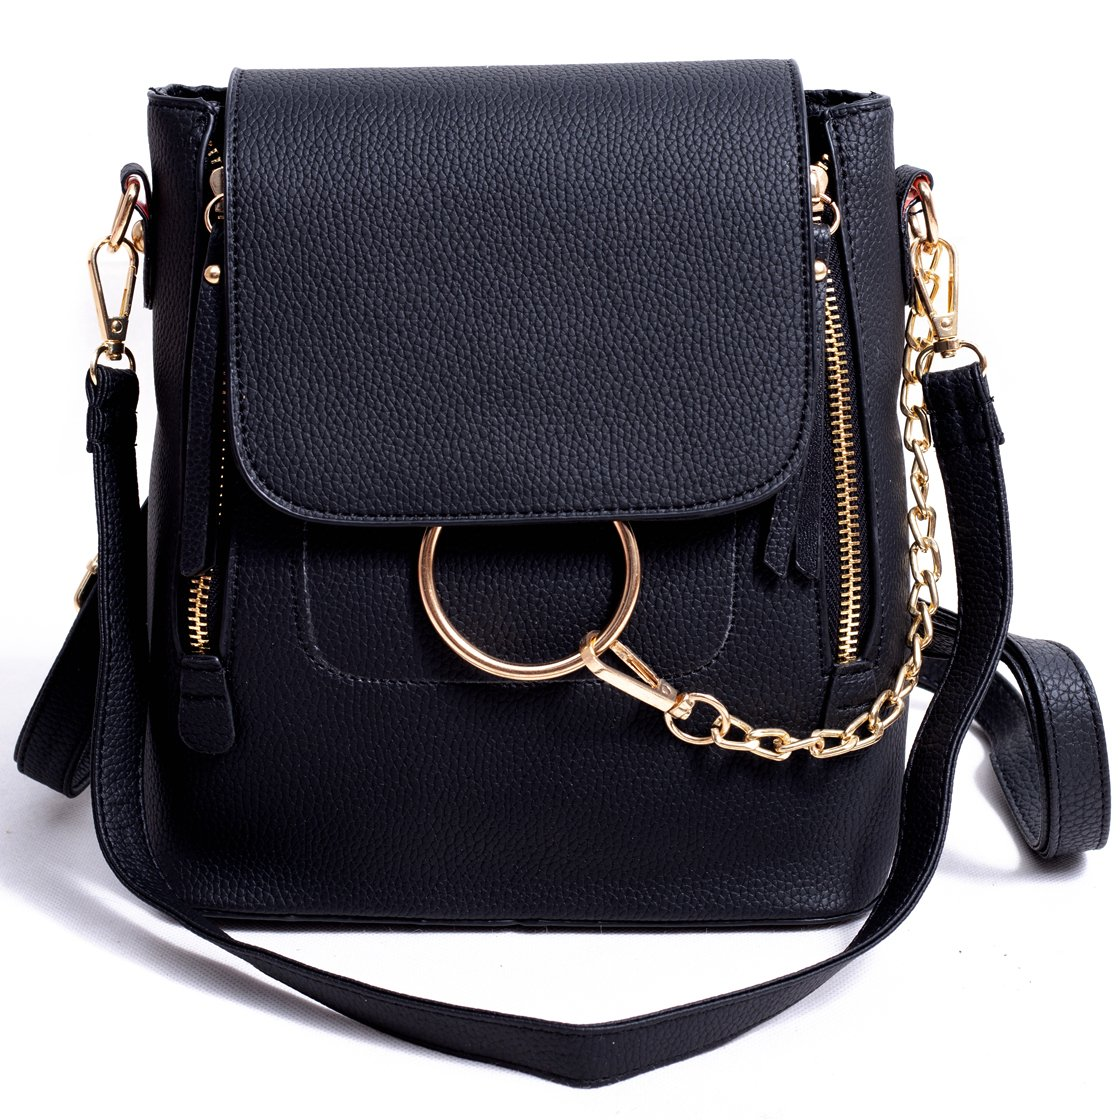 BABORRY Women Crossbody Chain Backpack Purse Small Pu Designer Leather Shoulder Bag for women Ladies Black Handbags (Black)